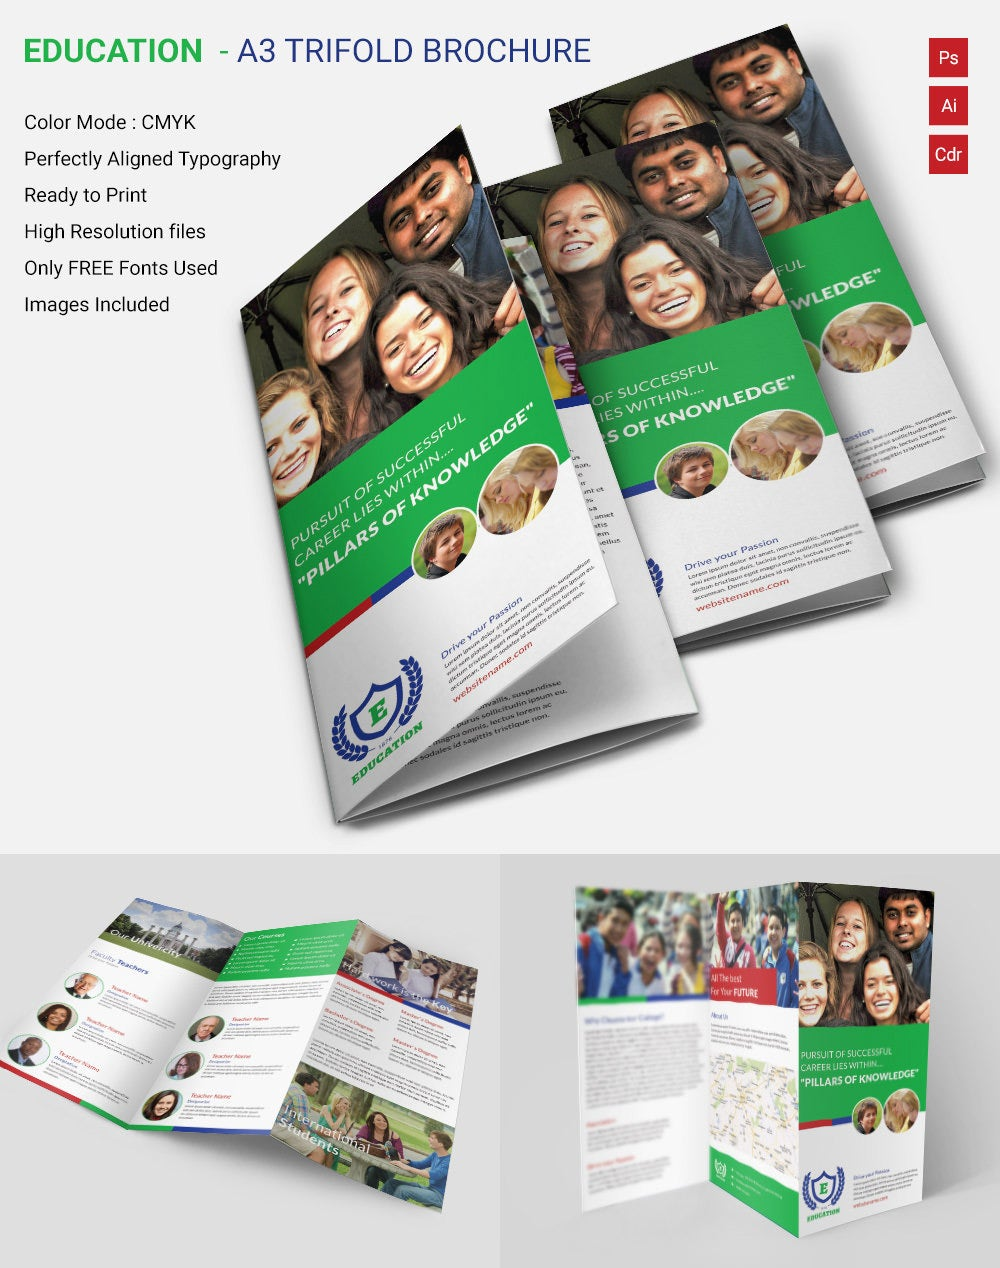 Attractive Education A3 Tri Fold Brochure Template | Free & Premium ...